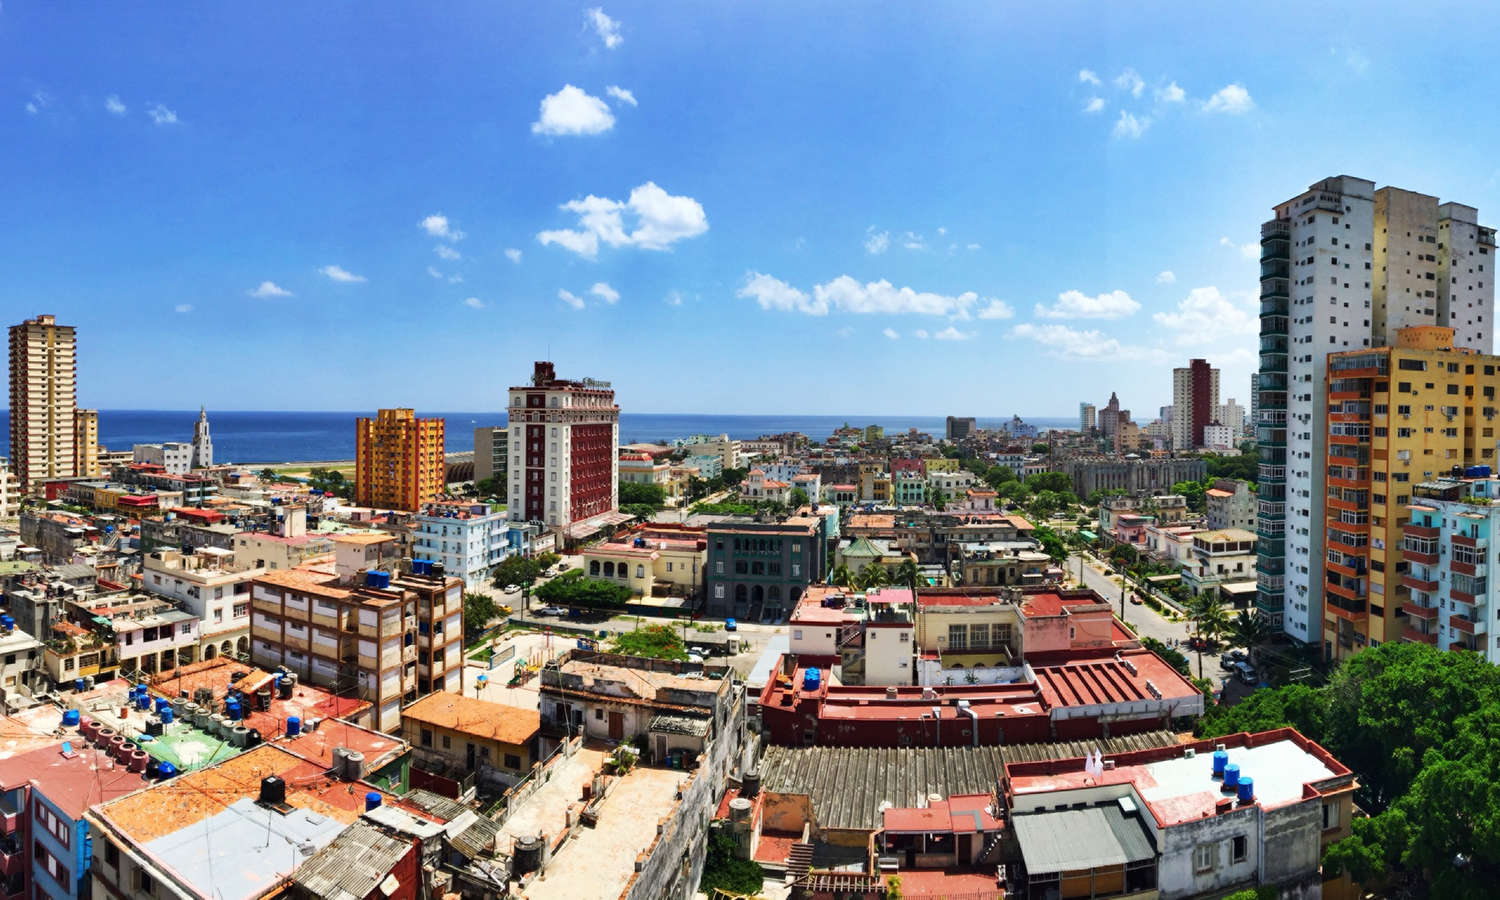 A panoramic view of Vedado, the neighborhood where the group stayed.